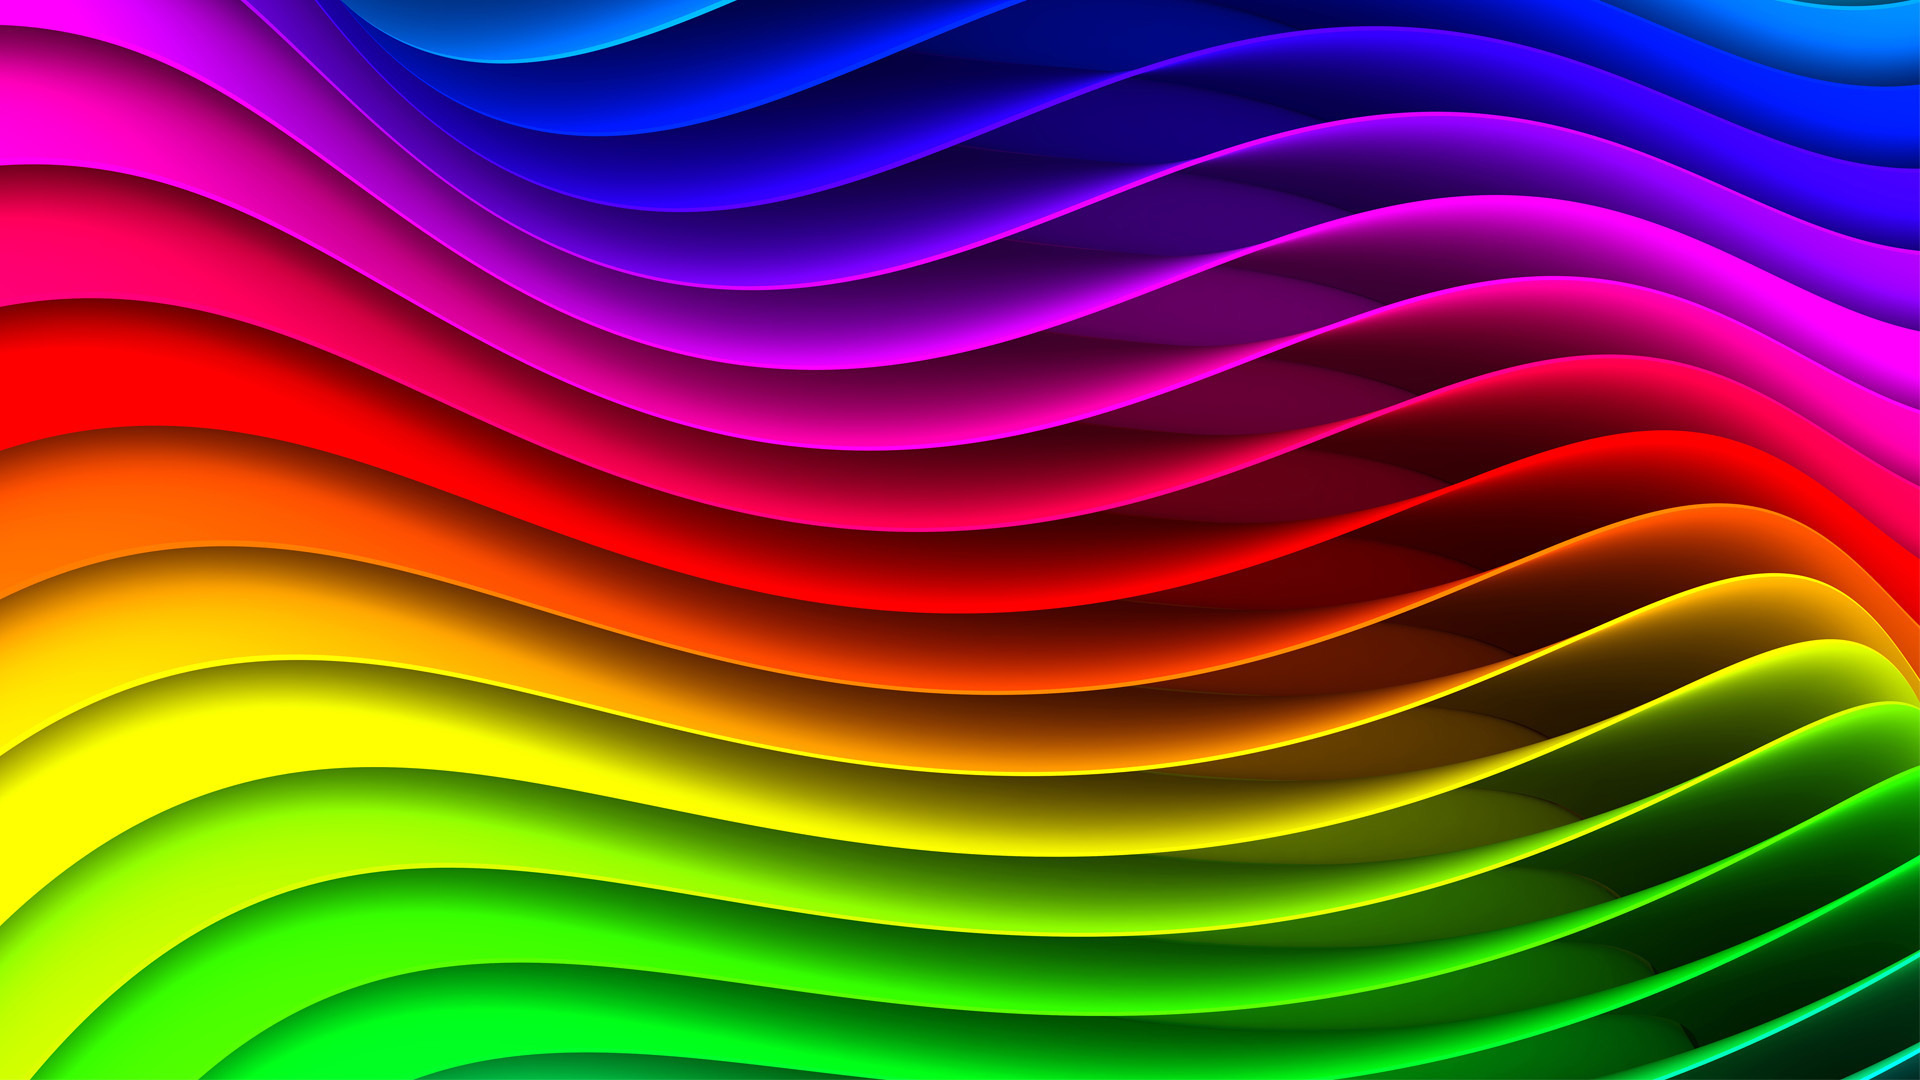 17899 download wallpaper Background, Rainbow screensavers and pictures for free